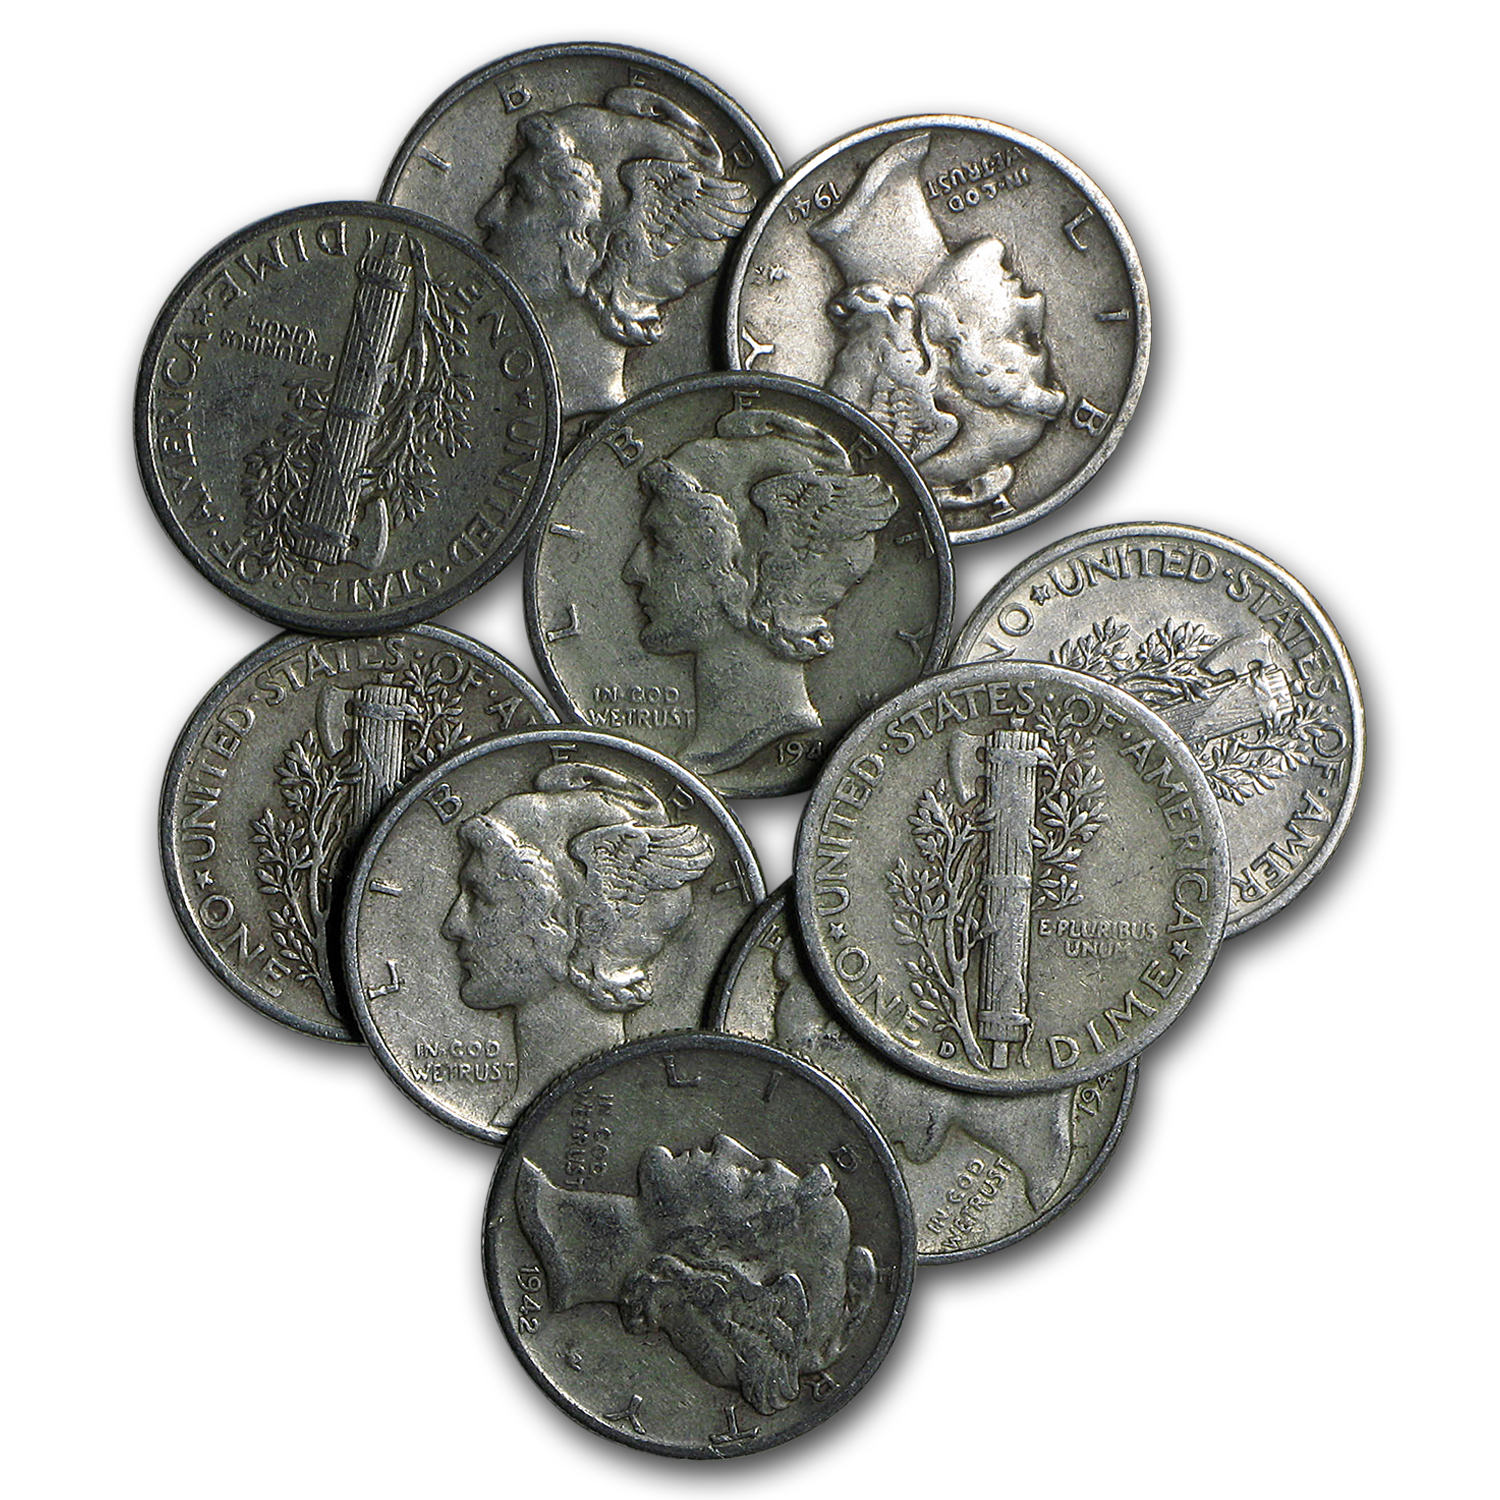 $1.00 Face Value XF Mercury Dimes